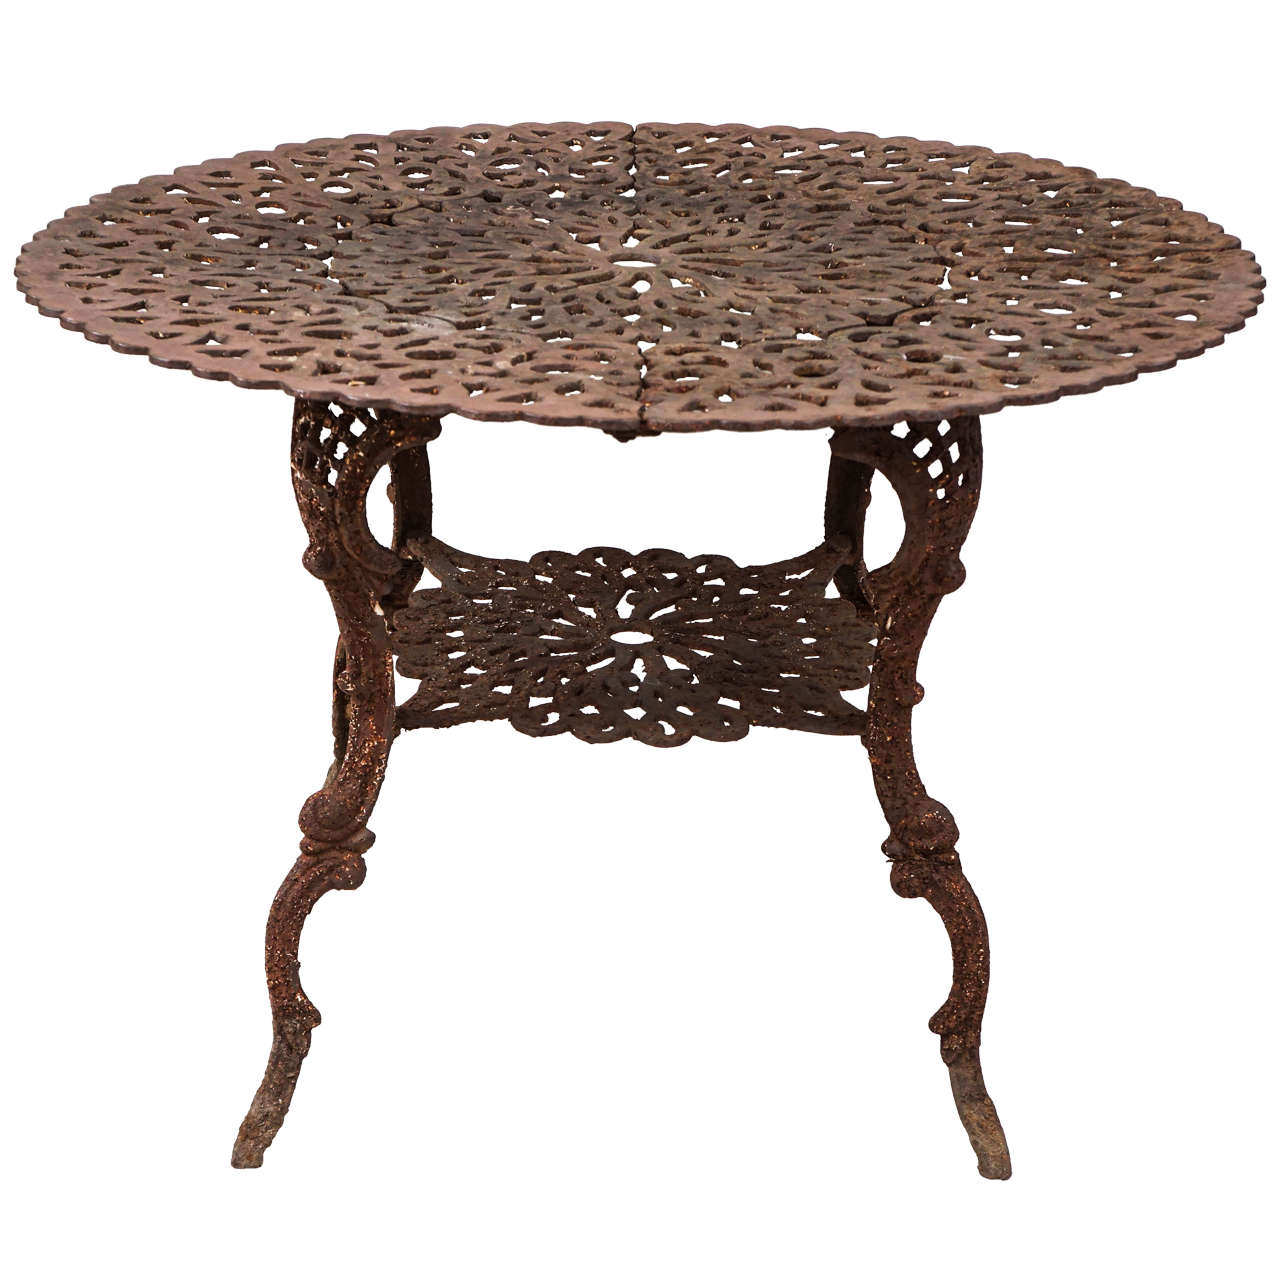 Outdoor Victorian Table: Late 19th Century Victorian Cast Iron Table At 1stdibs